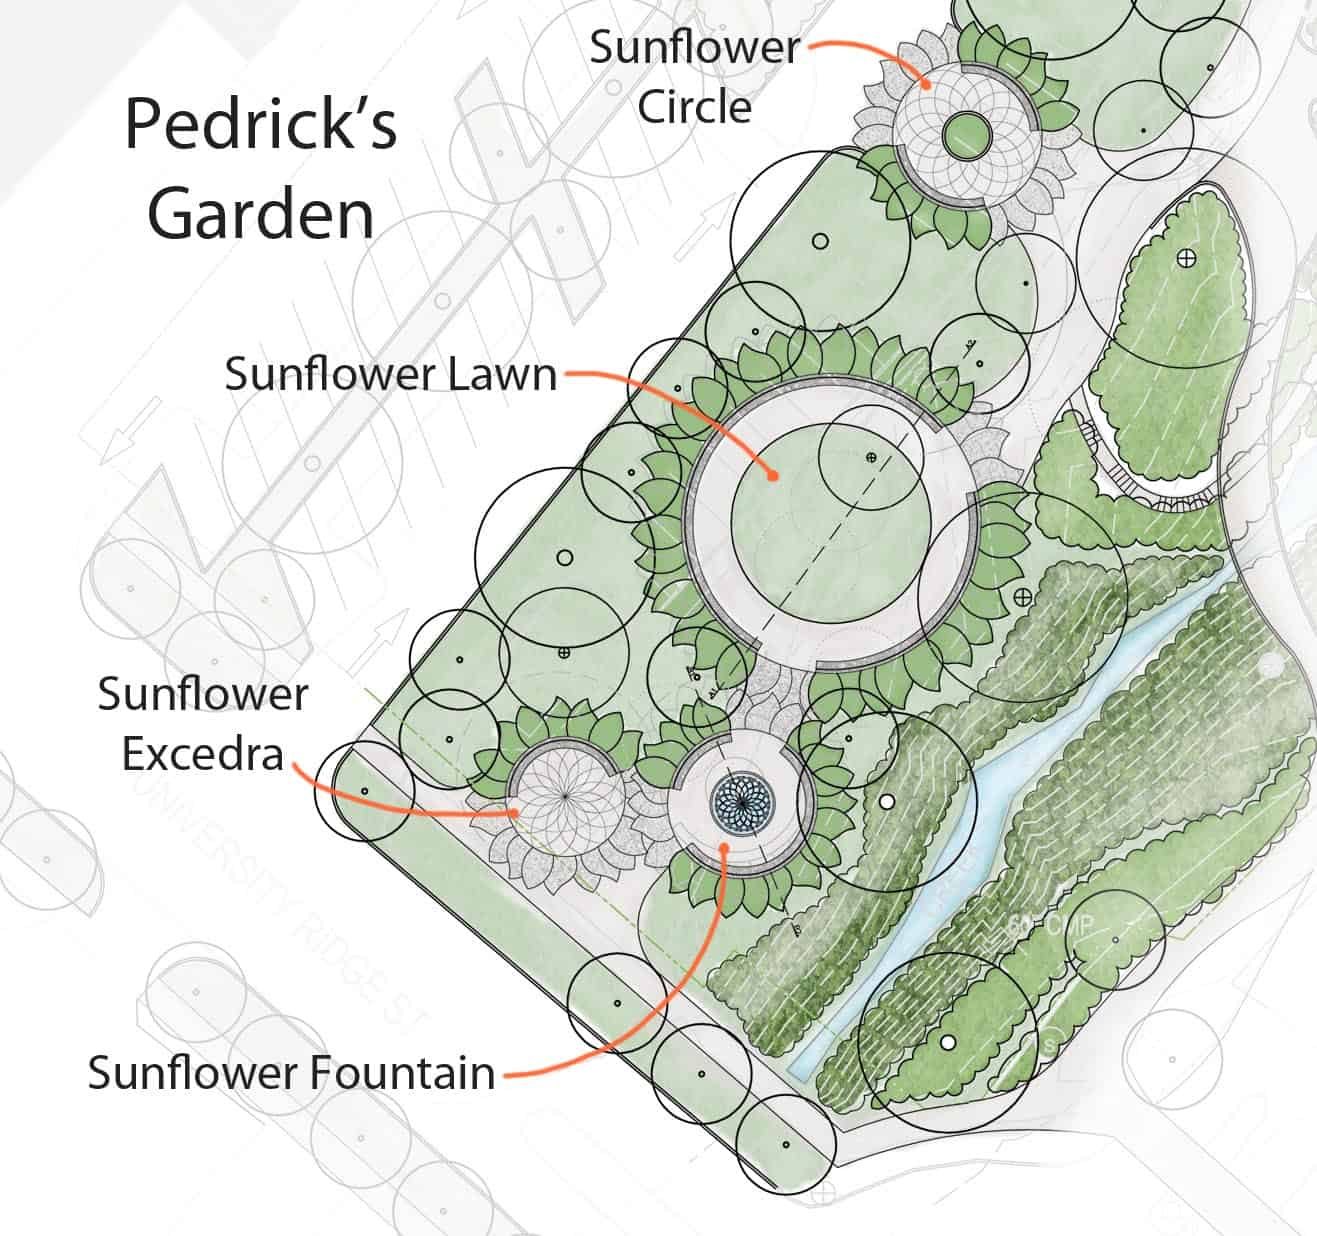 The Enlargement Plan Of Pedricks Garden